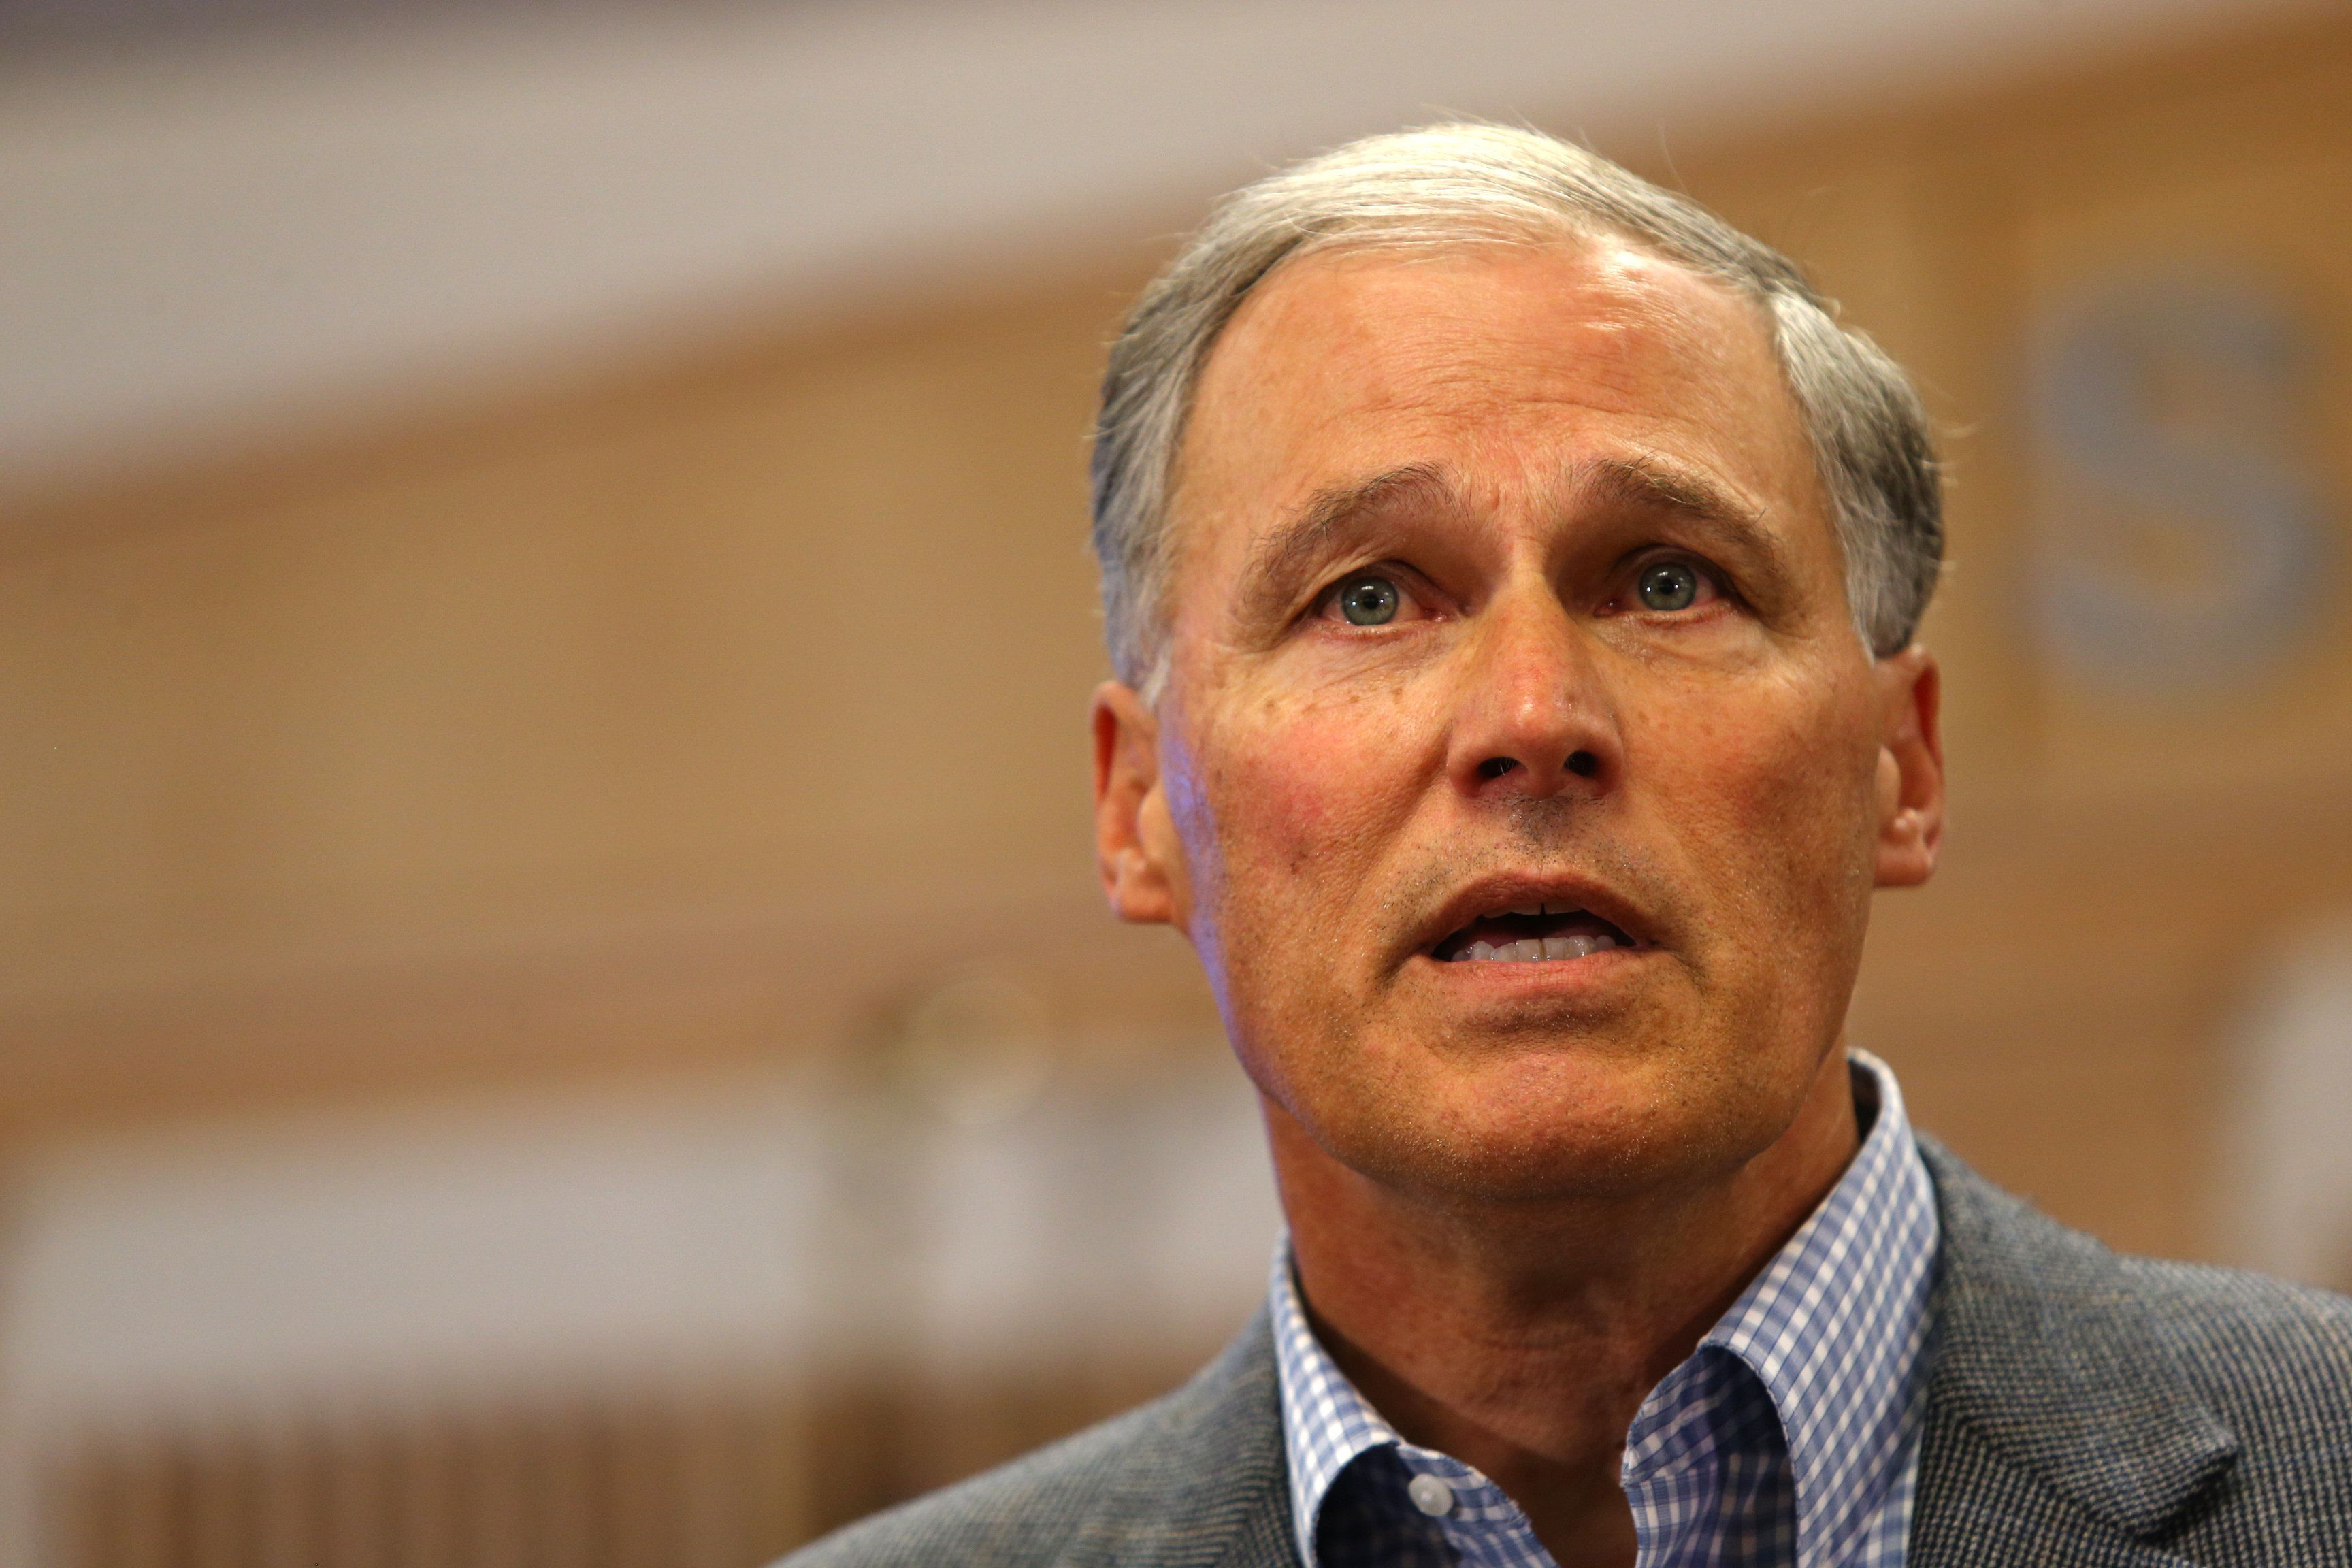 BURLINGTON, WA - SEPTEMBER 24: Governor Jay Inslee (L) of Washington State speaks at a press conference on September 24, 2016 in Burlington, Washington. Officials announced the gunman was caught in Oak Harbor, Washington and is in custody. Last night five people were shot and killed in the Cascade Mall. (Photo by Karen Ducey/Getty Images)